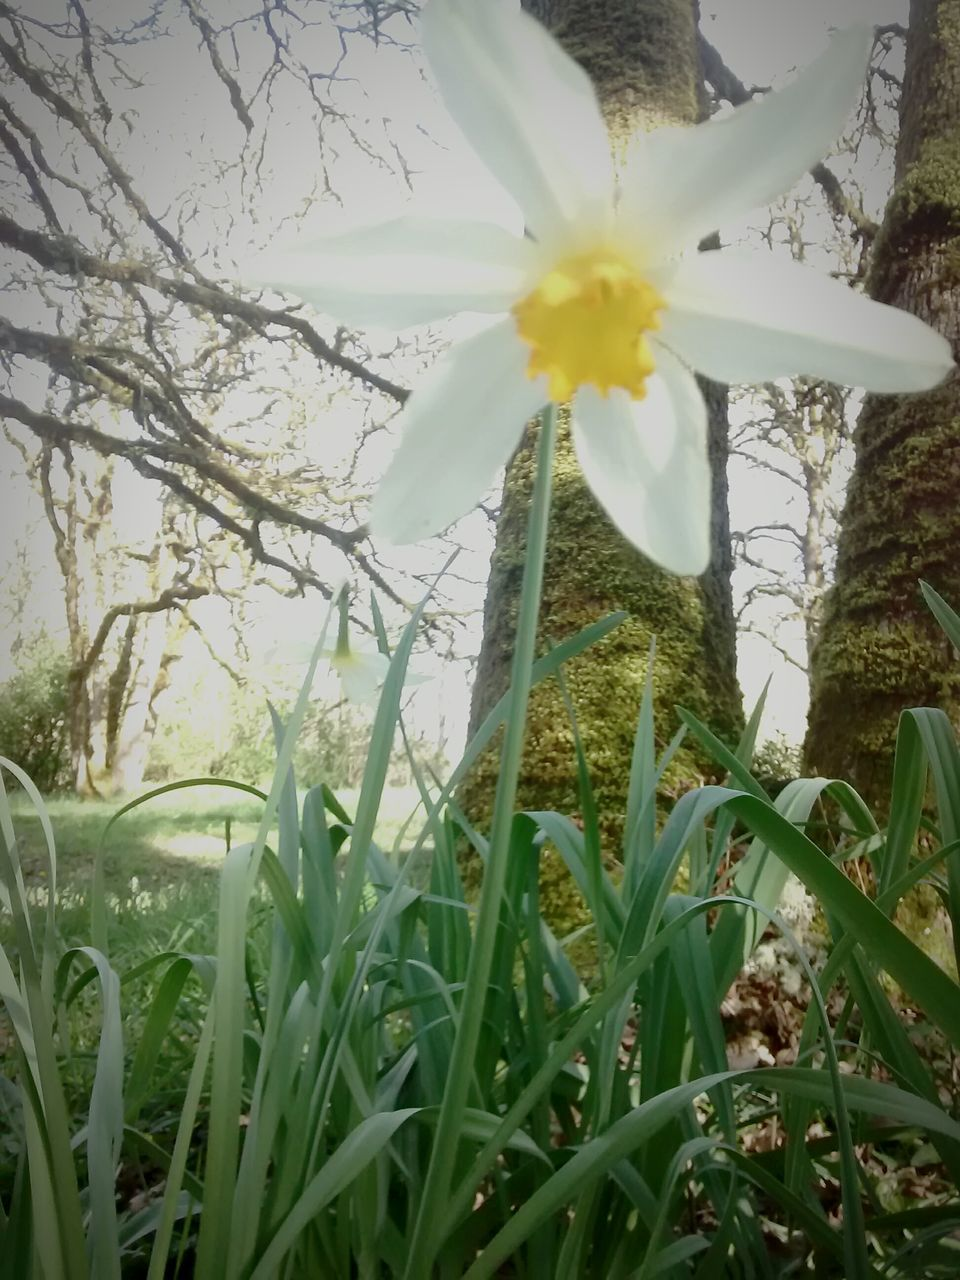 flower, growth, nature, beauty in nature, fragility, freshness, petal, grass, plant, field, no people, green color, day, outdoors, flower head, springtime, close-up, blooming, tree, snowdrop, sky